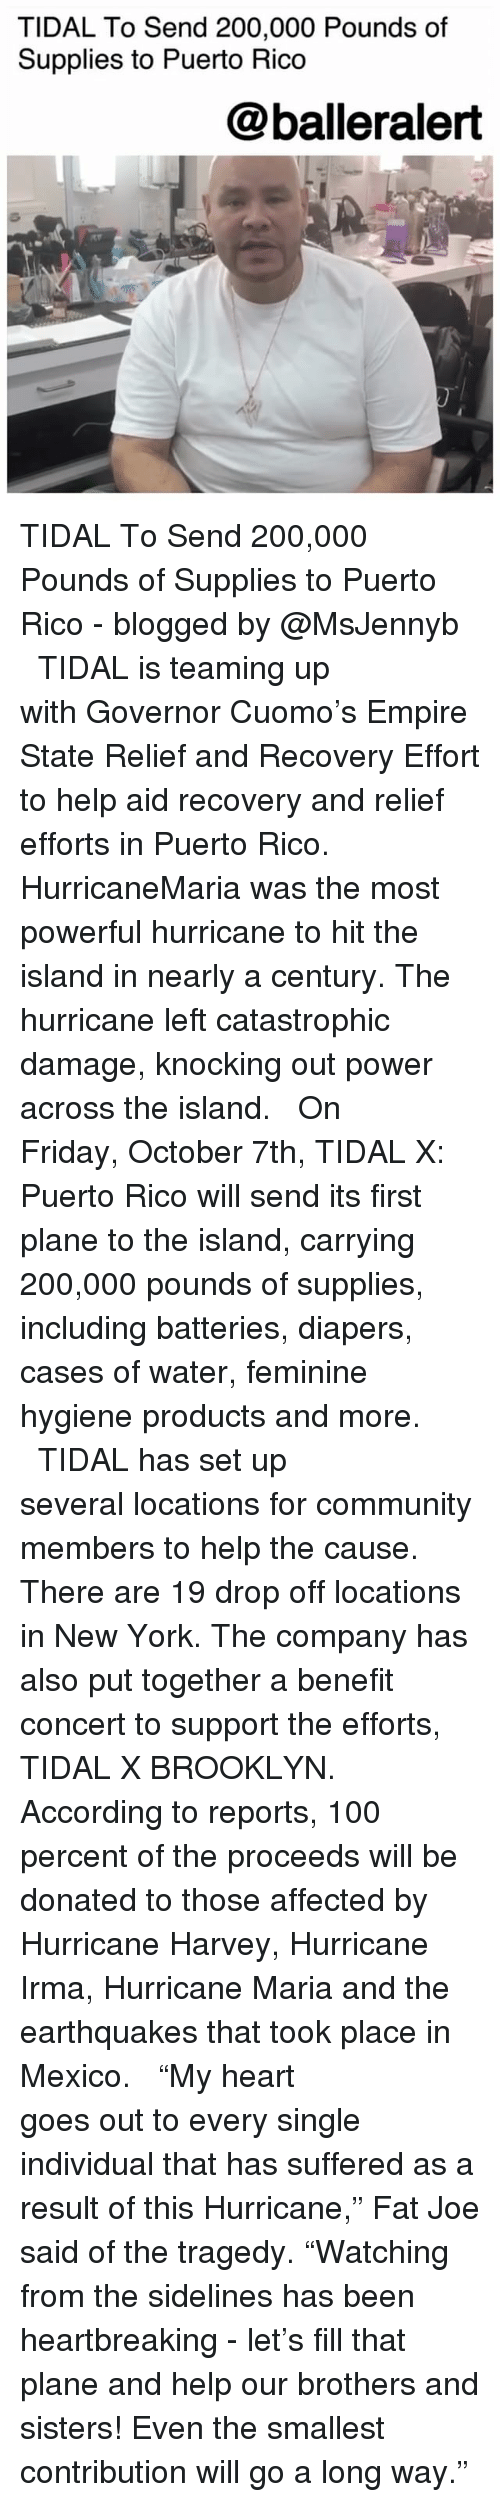 """Anaconda, Bailey Jay, and Community: TIDAL To Send 200,000 Pounds of  Supplies to Puerto Rico  @balleralert TIDAL To Send 200,000 Pounds of Supplies to Puerto Rico - blogged by @MsJennyb ⠀⠀⠀⠀⠀⠀⠀ ⠀⠀⠀⠀⠀⠀⠀ TIDAL is teaming up with Governor Cuomo's Empire State Relief and Recovery Effort to help aid recovery and relief efforts in Puerto Rico. ⠀⠀⠀⠀⠀⠀⠀ ⠀⠀⠀⠀⠀⠀⠀ HurricaneMaria was the most powerful hurricane to hit the island in nearly a century. The hurricane left catastrophic damage, knocking out power across the island. ⠀⠀⠀⠀⠀⠀⠀ ⠀⠀⠀⠀⠀⠀⠀ On Friday, October 7th, TIDAL X: Puerto Rico will send its first plane to the island, carrying 200,000 pounds of supplies, including batteries, diapers, cases of water, feminine hygiene products and more. ⠀⠀⠀⠀⠀⠀⠀ ⠀⠀⠀⠀⠀⠀⠀ TIDAL has set up several locations for community members to help the cause. There are 19 drop off locations in New York. The company has also put together a benefit concert to support the efforts, TIDAL X BROOKLYN. According to reports, 100 percent of the proceeds will be donated to those affected by Hurricane Harvey, Hurricane Irma, Hurricane Maria and the earthquakes that took place in Mexico. ⠀⠀⠀⠀⠀⠀⠀ ⠀⠀⠀⠀⠀⠀⠀ """"My heart goes out to every single individual that has suffered as a result of this Hurricane,"""" Fat Joe said of the tragedy. """"Watching from the sidelines has been heartbreaking - let's fill that plane and help our brothers and sisters! Even the smallest contribution will go a long way."""""""